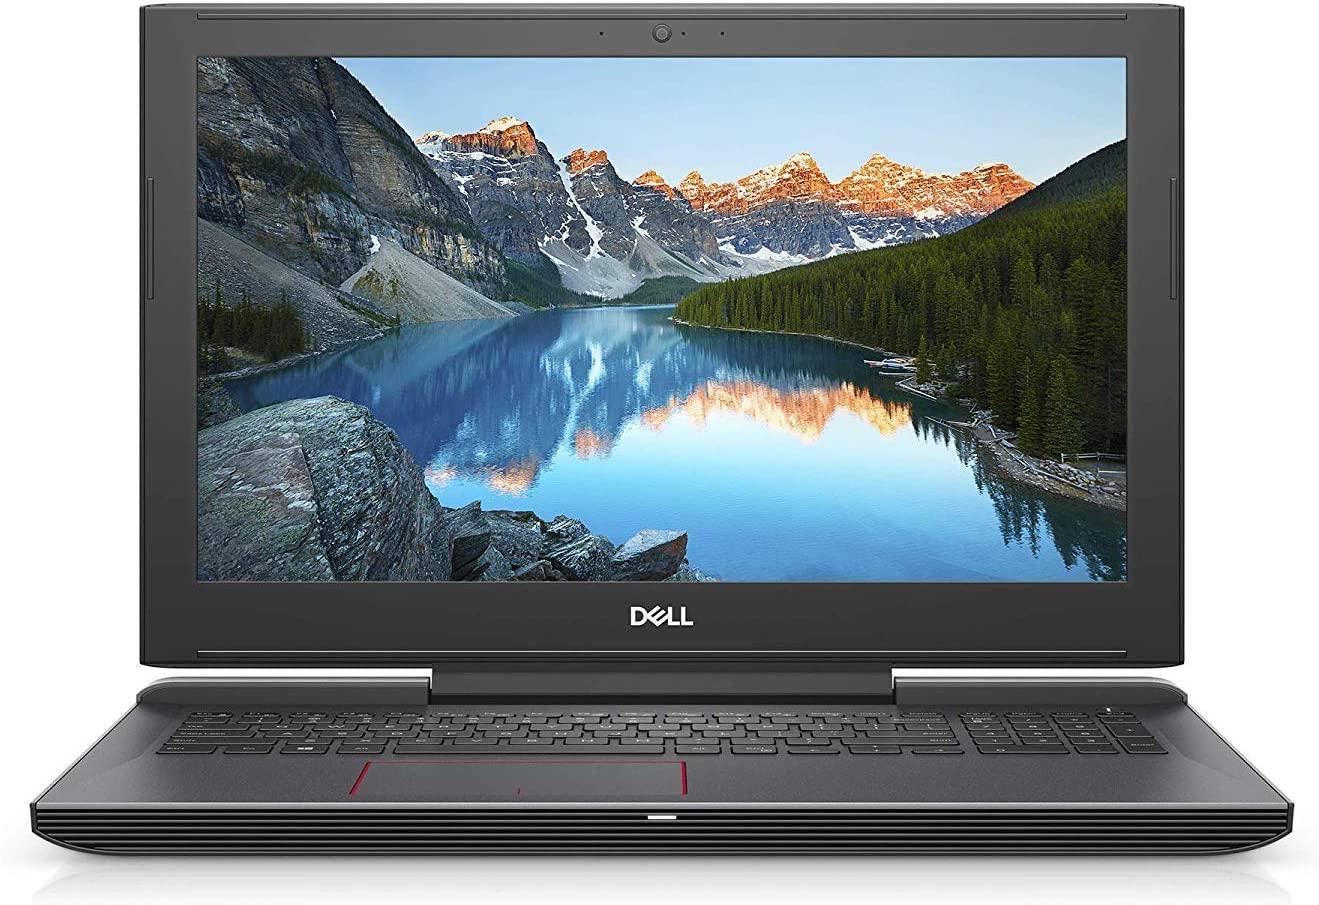 "Dell G5587 G5 15 5587 Laptop: Core i5-8300H Processor, 16GB RAM, NVidia GTX 1060, 256GB SSD+1TB HDD, 15.6"" Full HD (Red)"